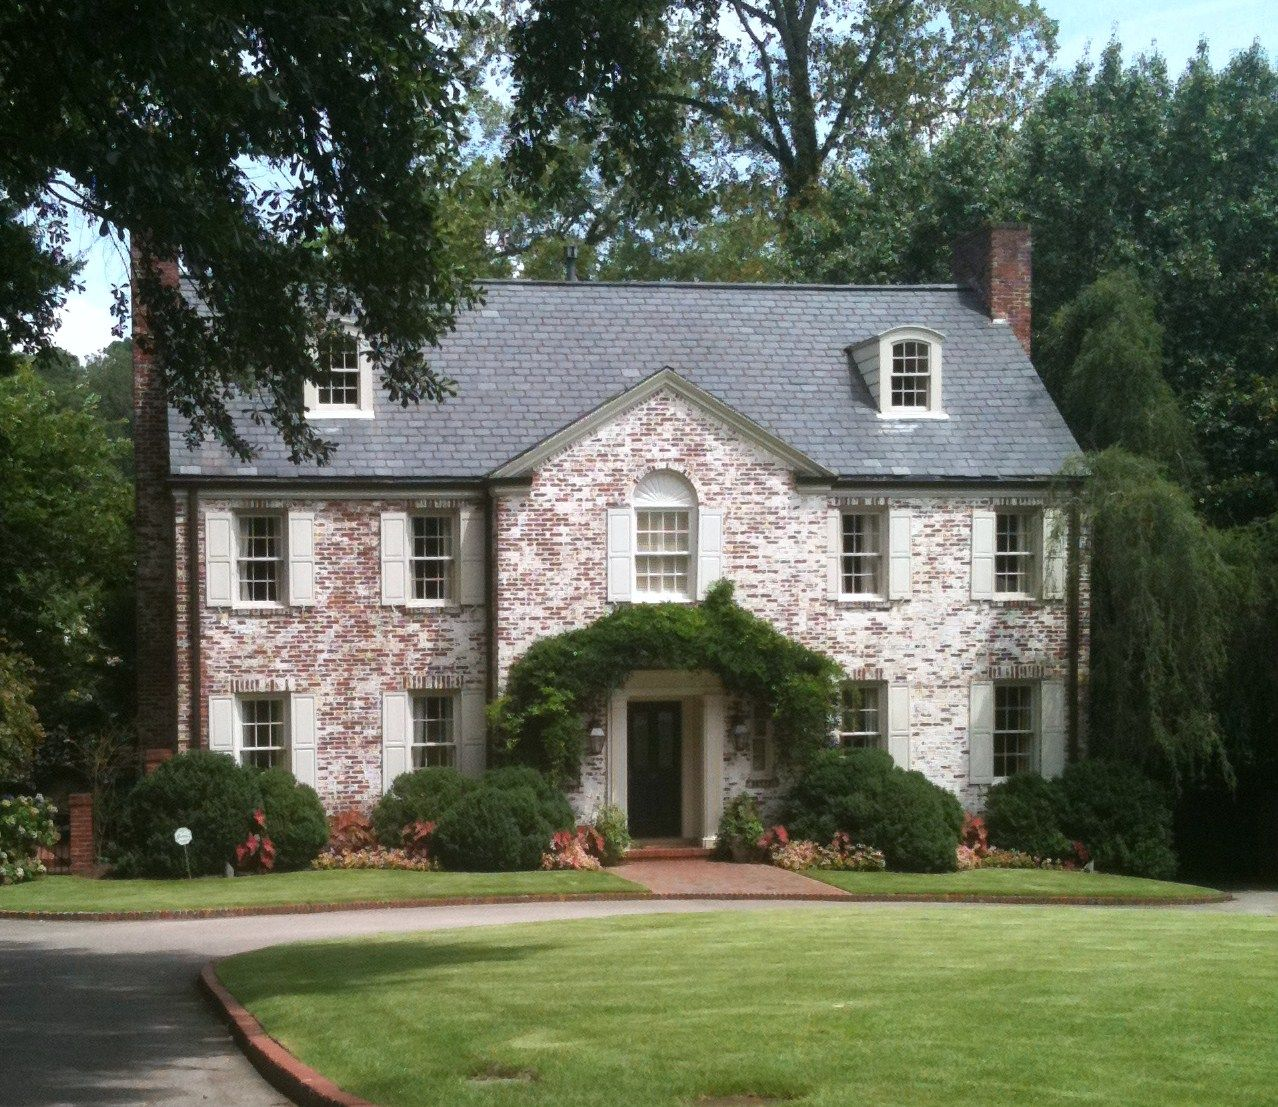 english cottages for sale | Mountain Brook Birmingham